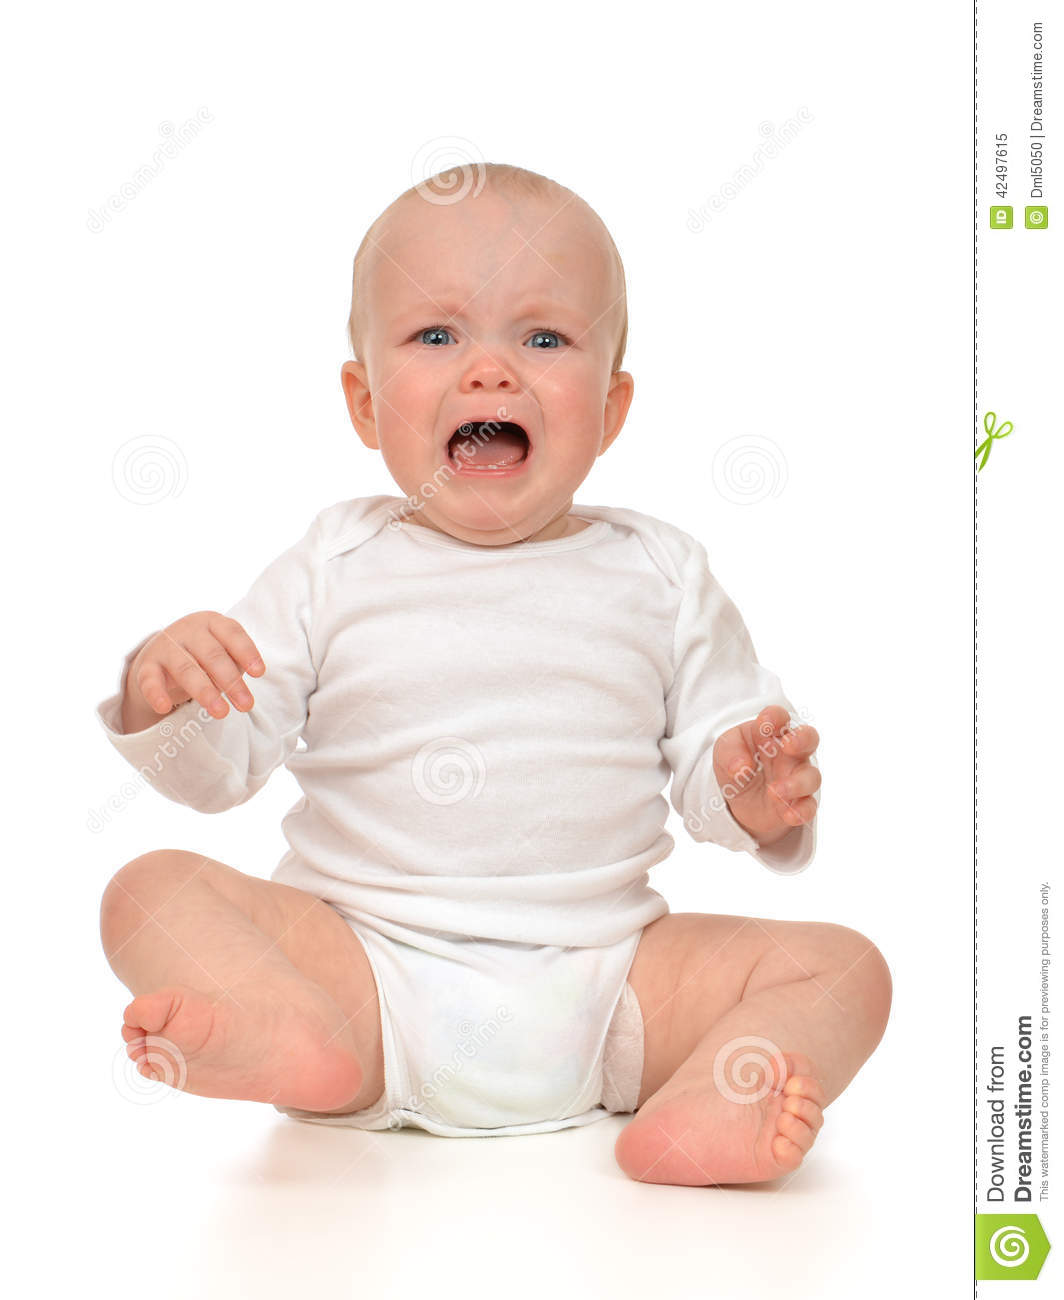 Small infant child baby girl toddler sad crying on a white background